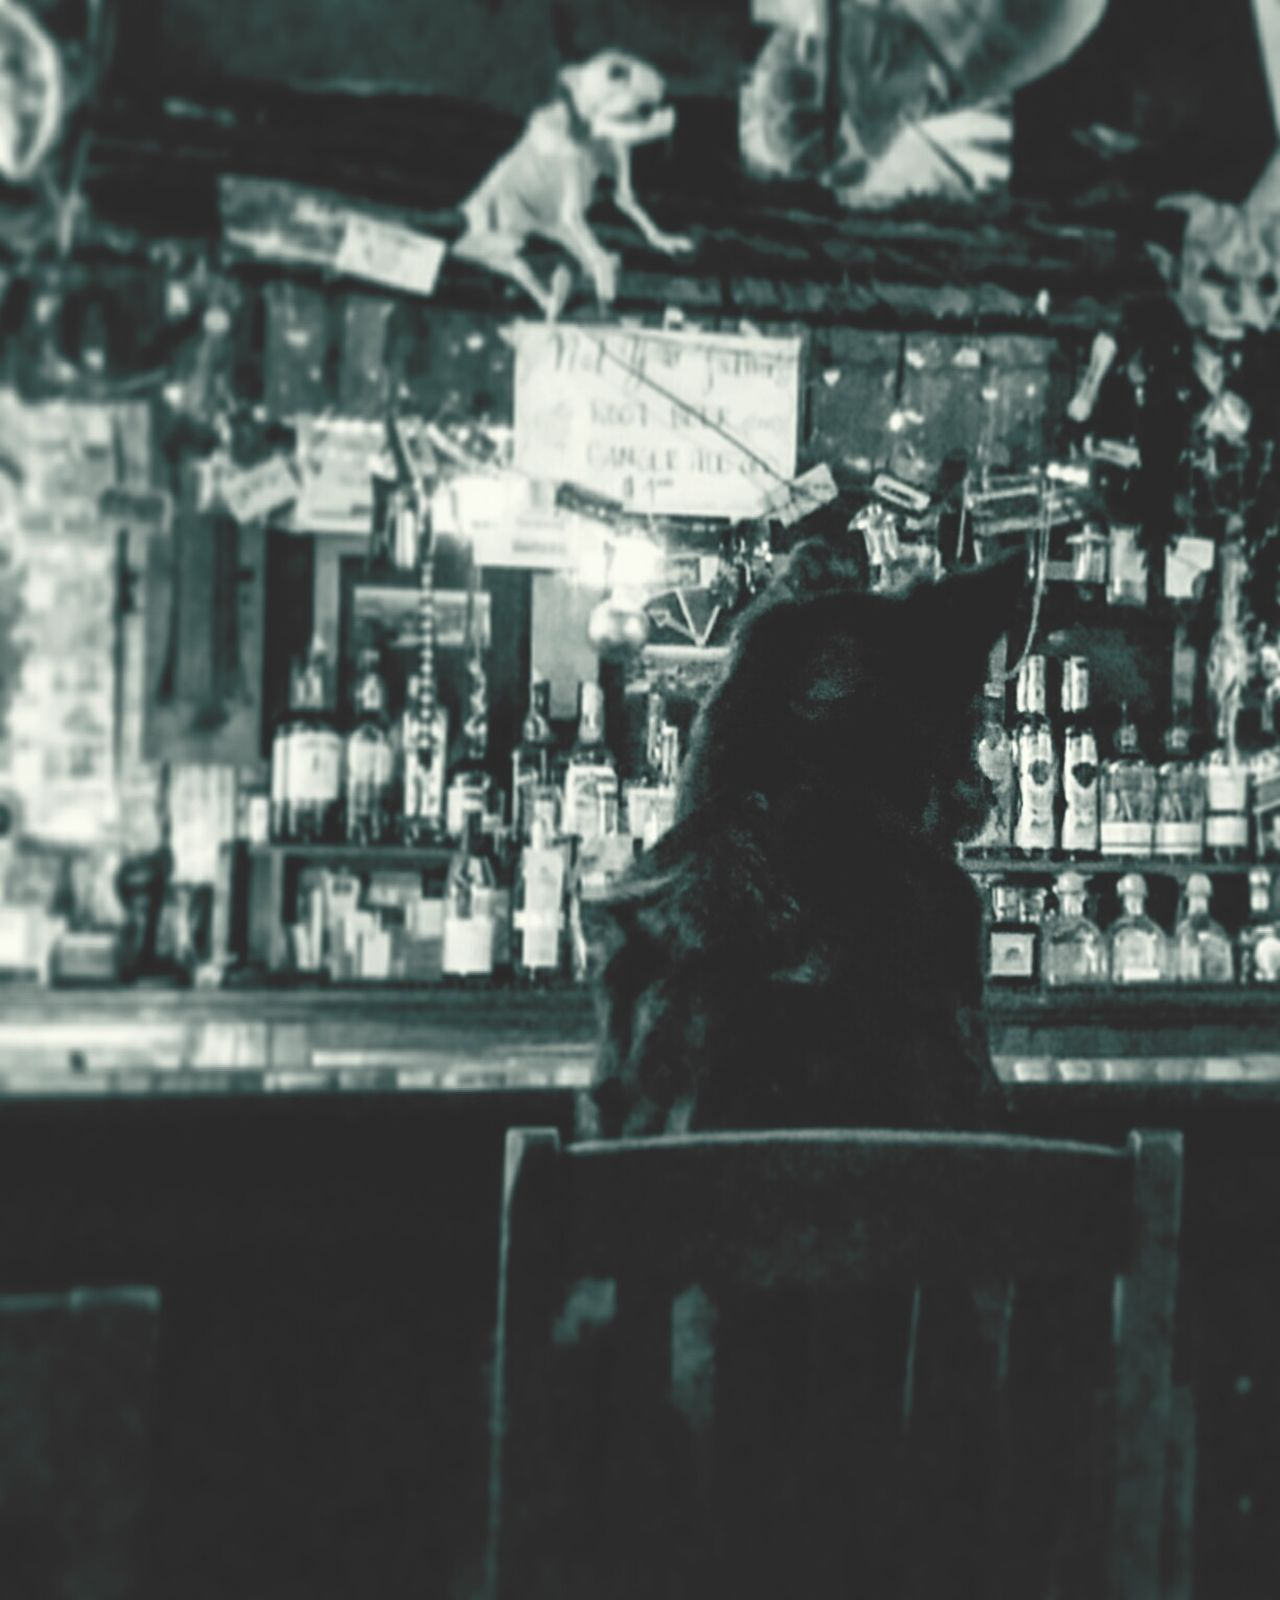 The Dog Who Ordered a Drink. Dog Bar City Edited Barscene Pet Pets Composition Interior Design